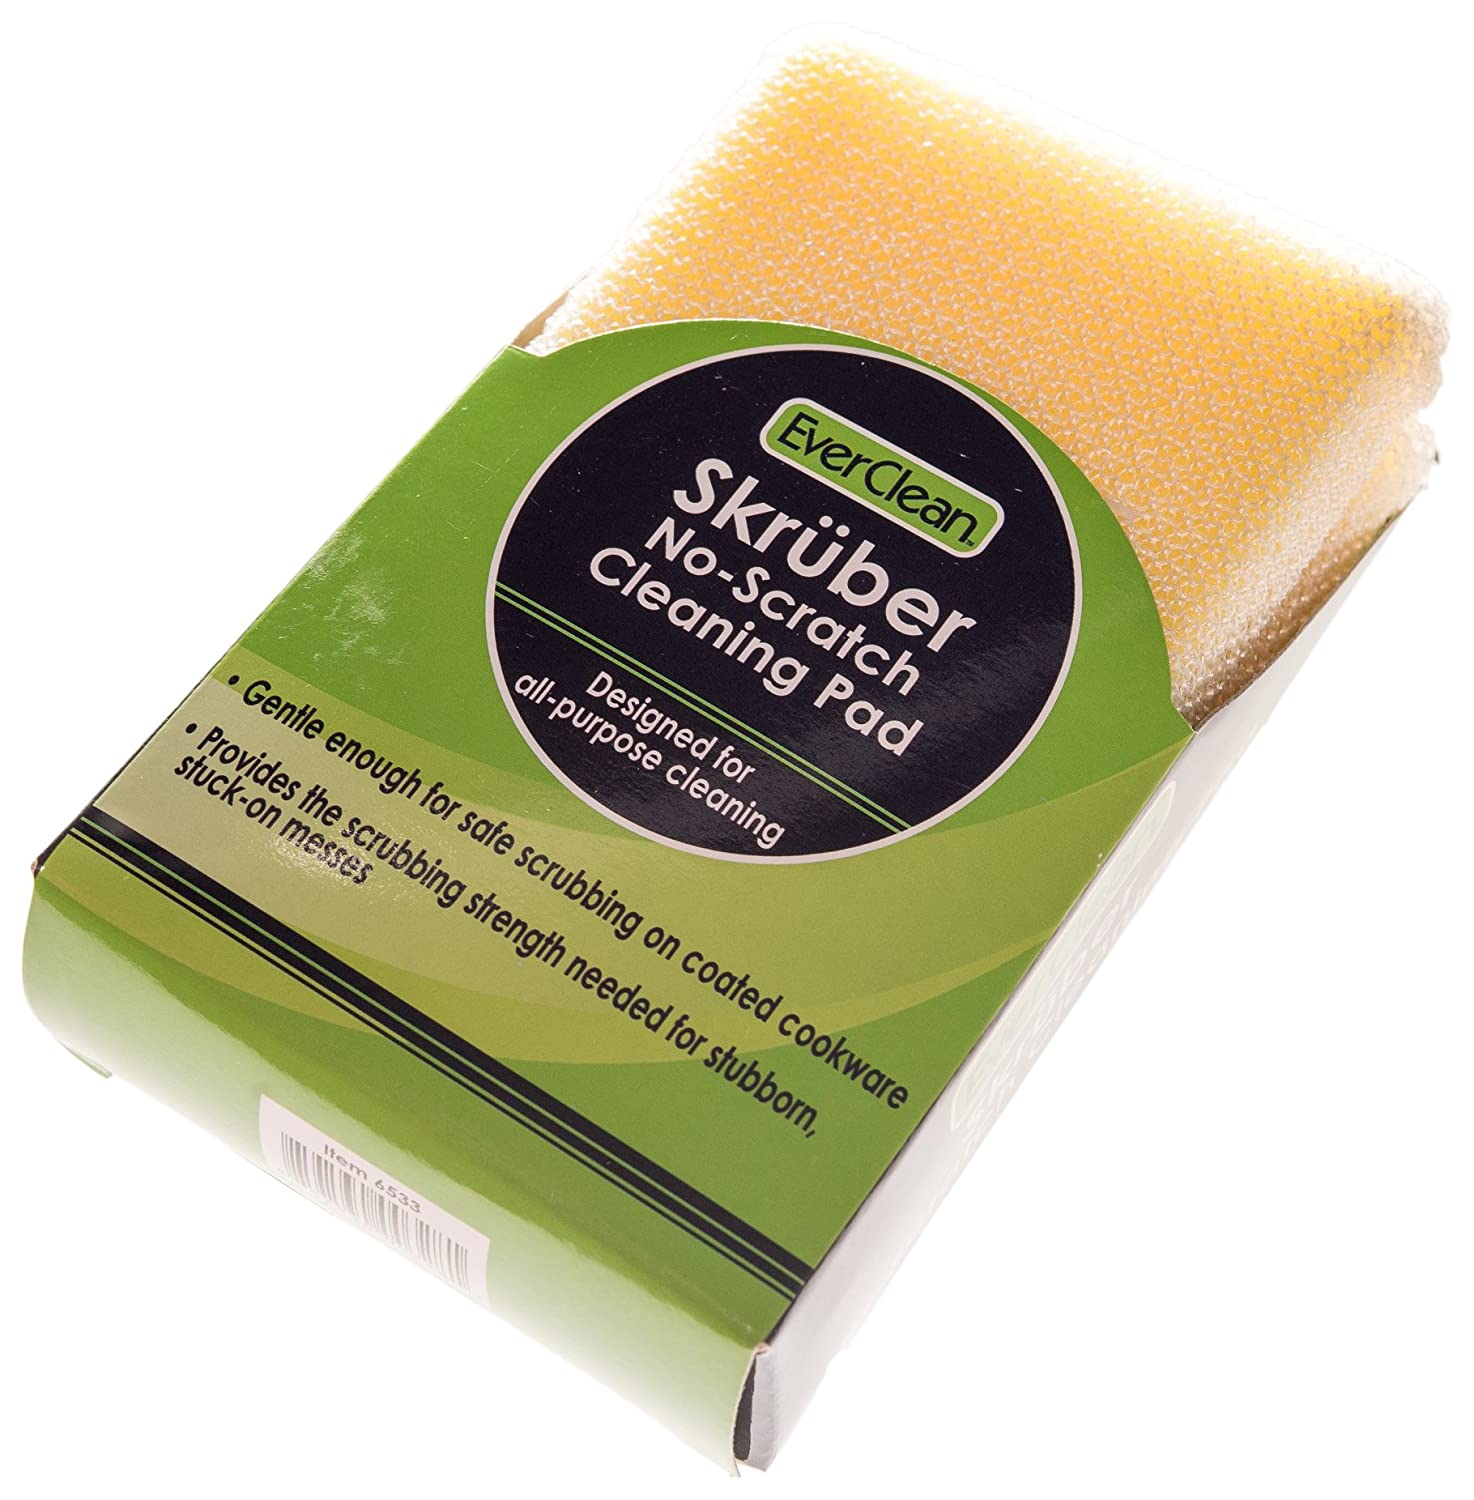 EverClean 6533 Skruber Non-Scratch Cleaning Pads 4.75 0.6 x 3 New product type All items in the store